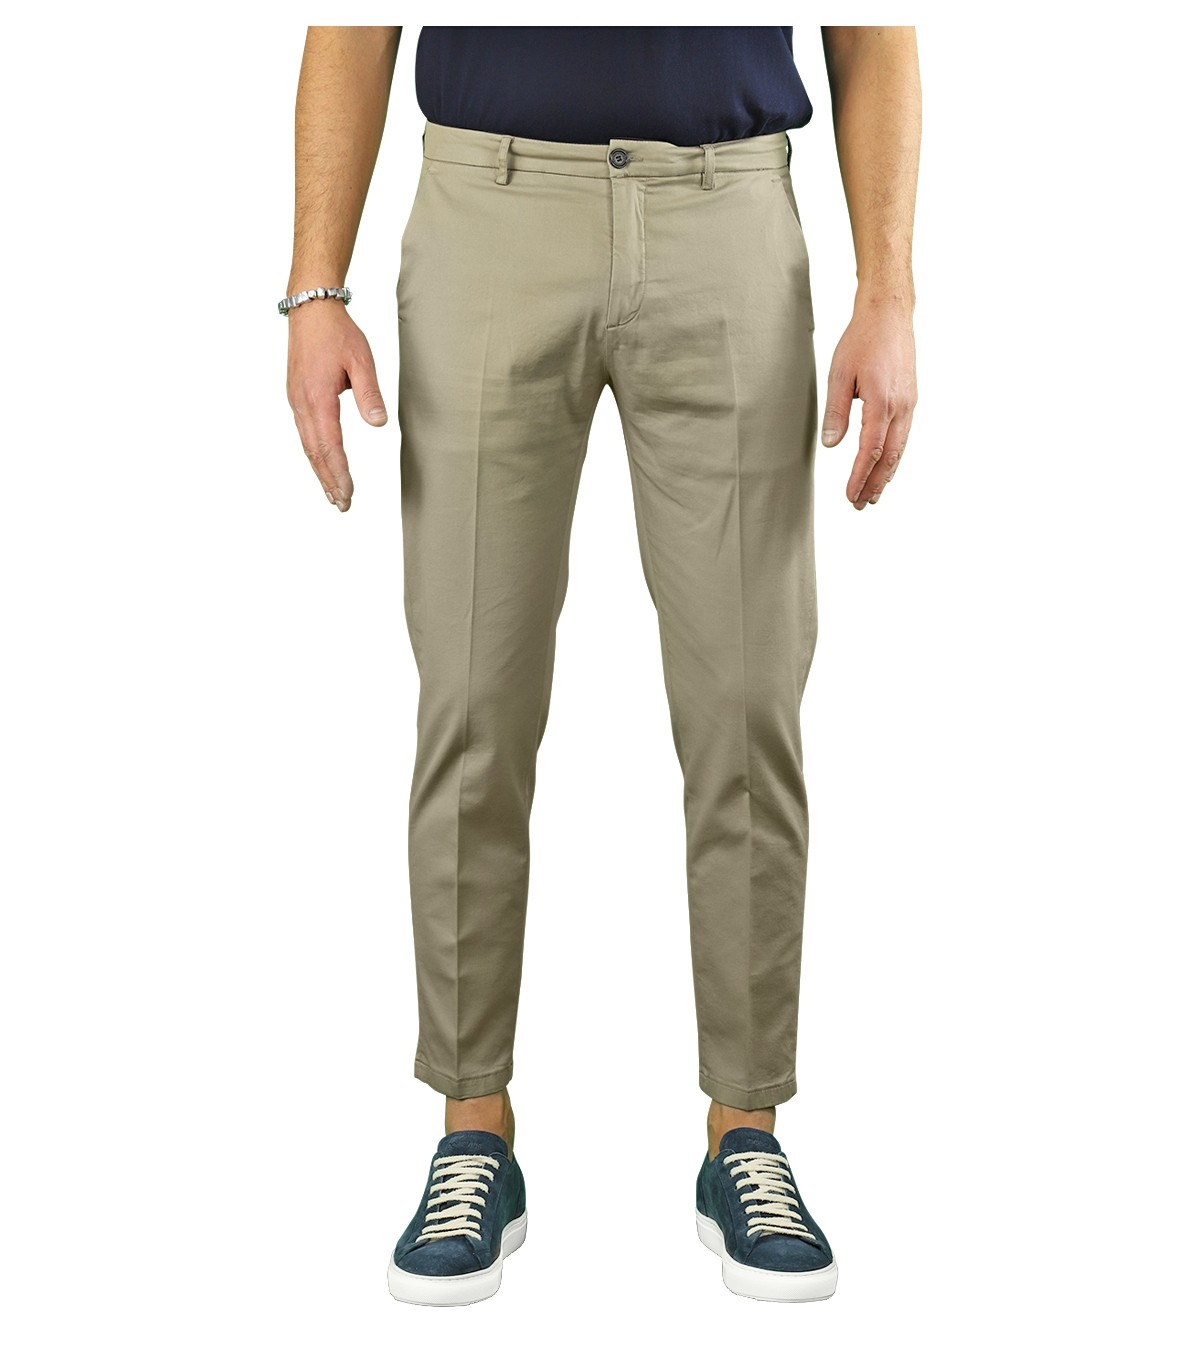 Department 5 Cottons PRINCE TAUPE CHINO PANTS